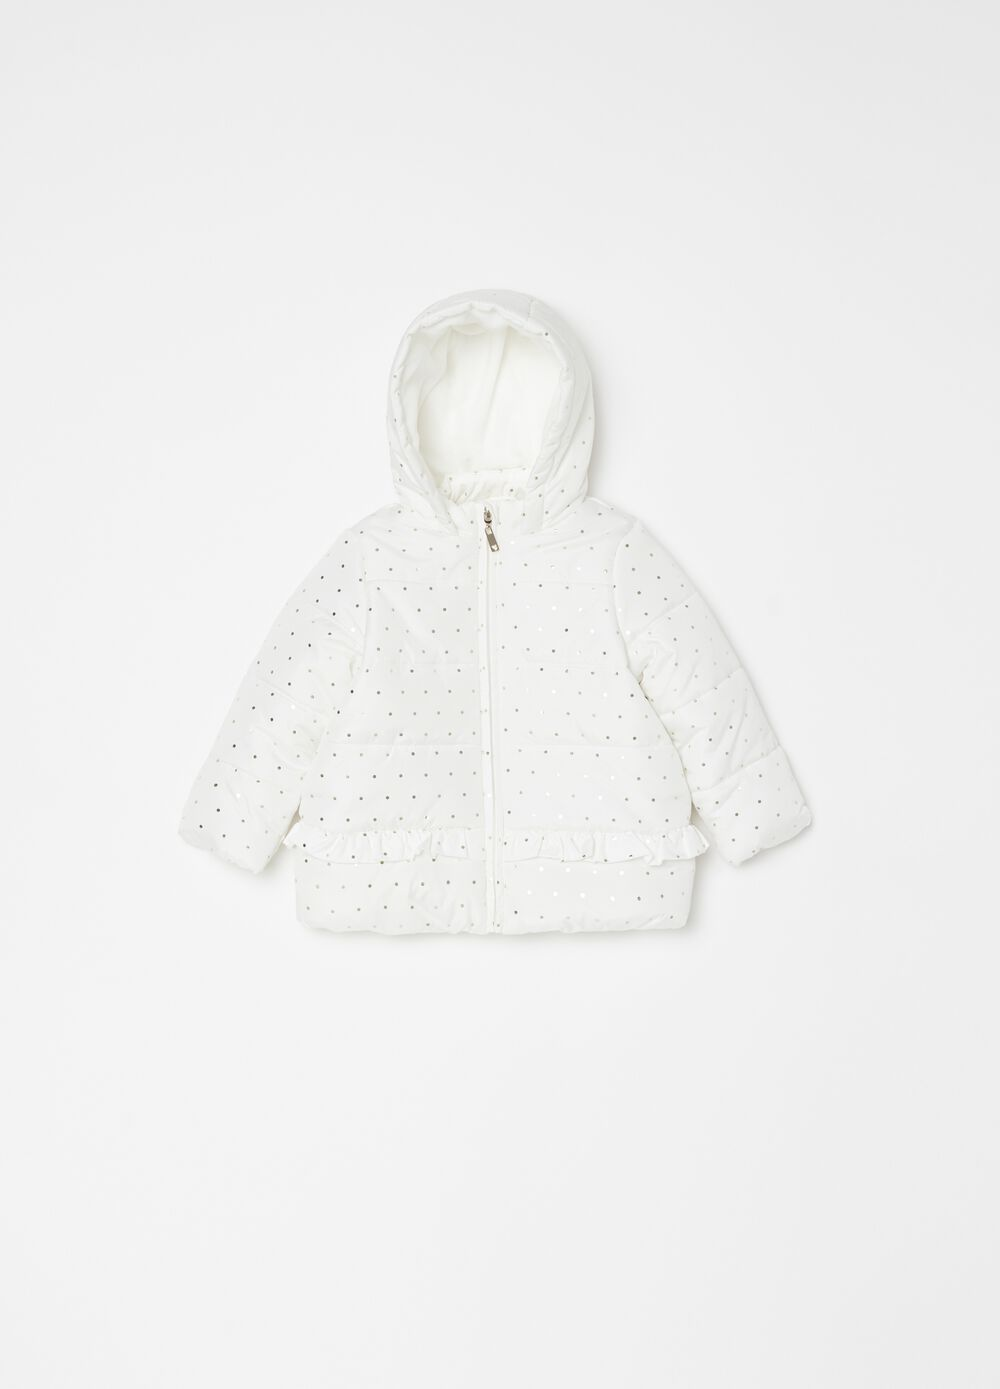 Padded and quilted jacket with micro dots